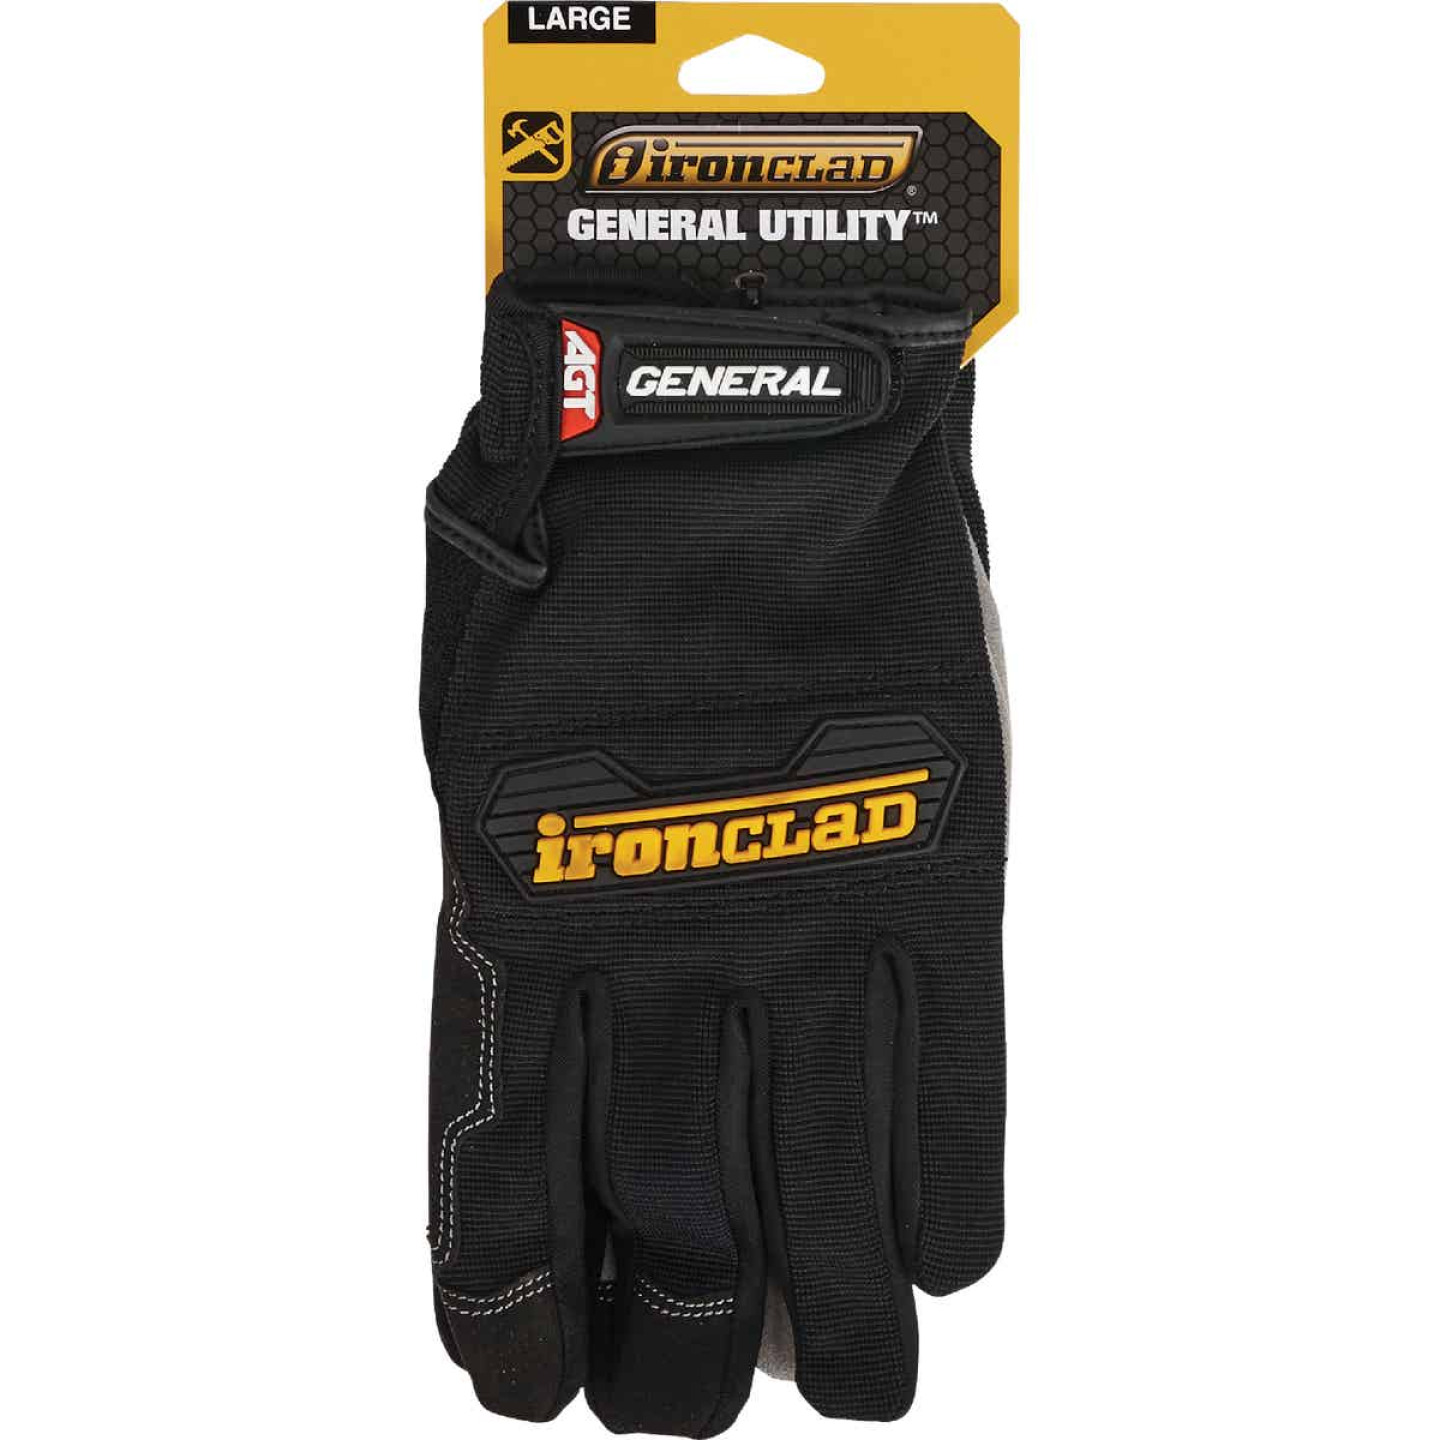 Ironclad General Utility Men's Large Synthetic Suede High Performance Glove Image 2